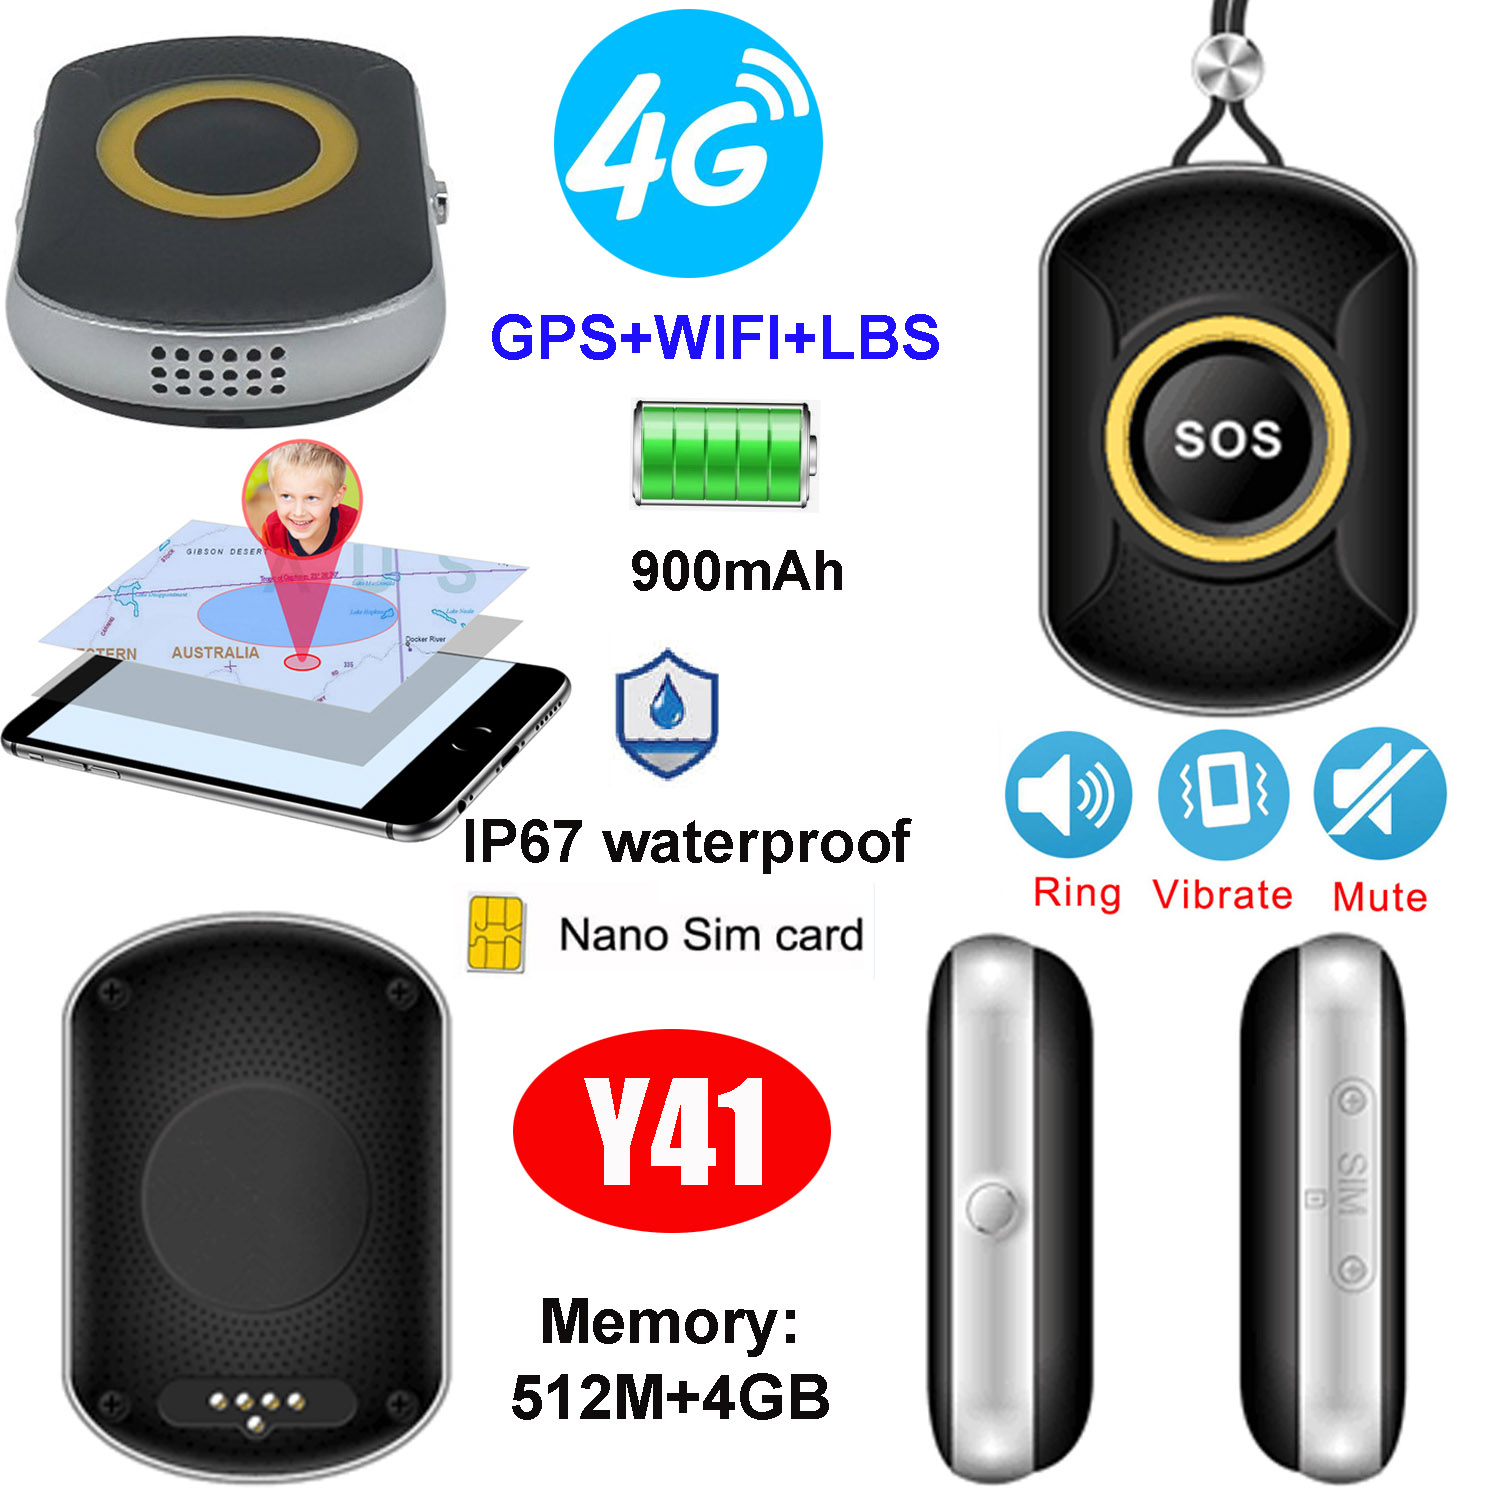 Waterproof IP67 900mAh Battery GPS Tracking Device with Sos Button Y41